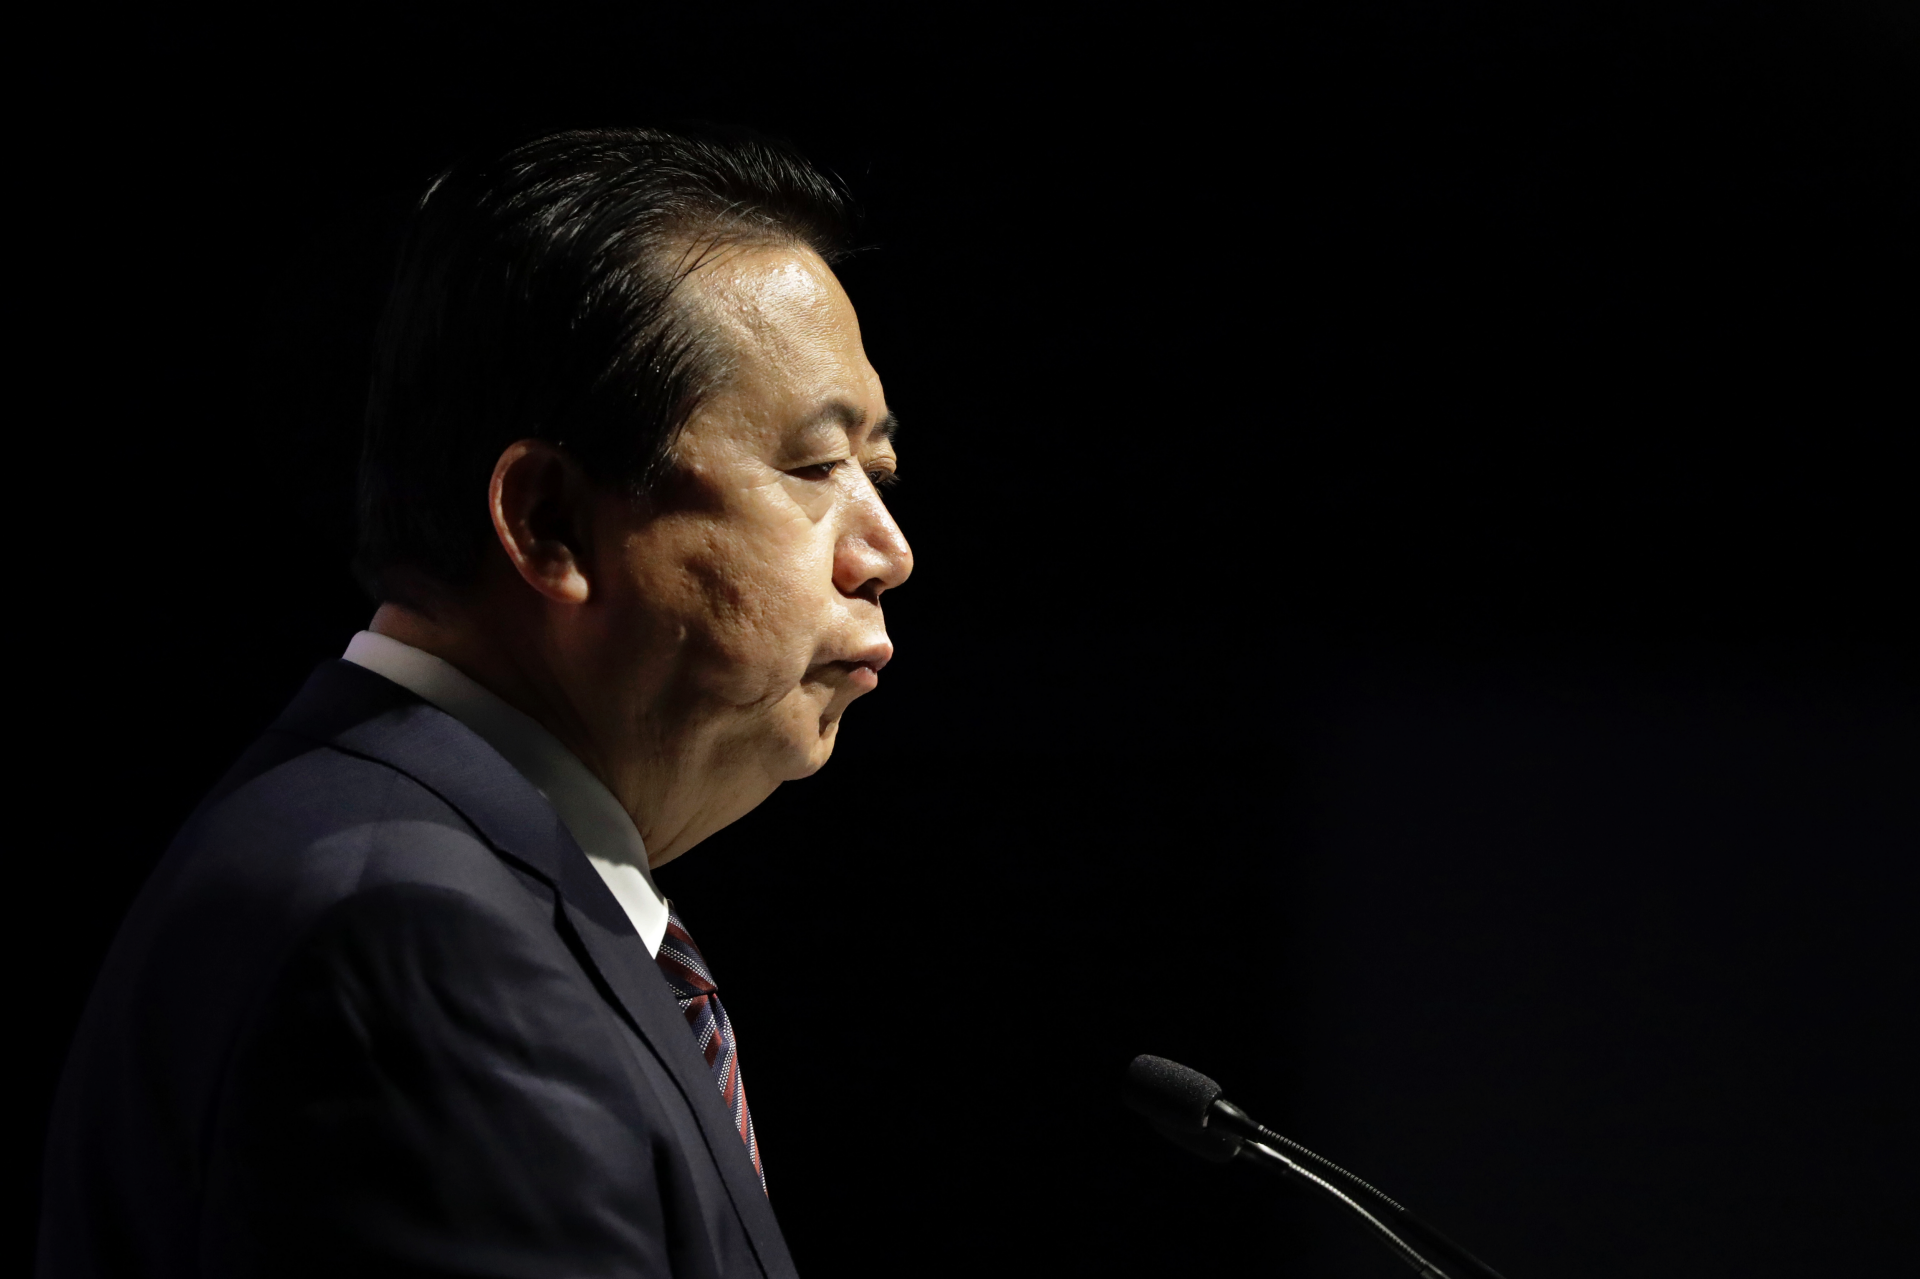 Missing Interpol president deeply rooted in China's security